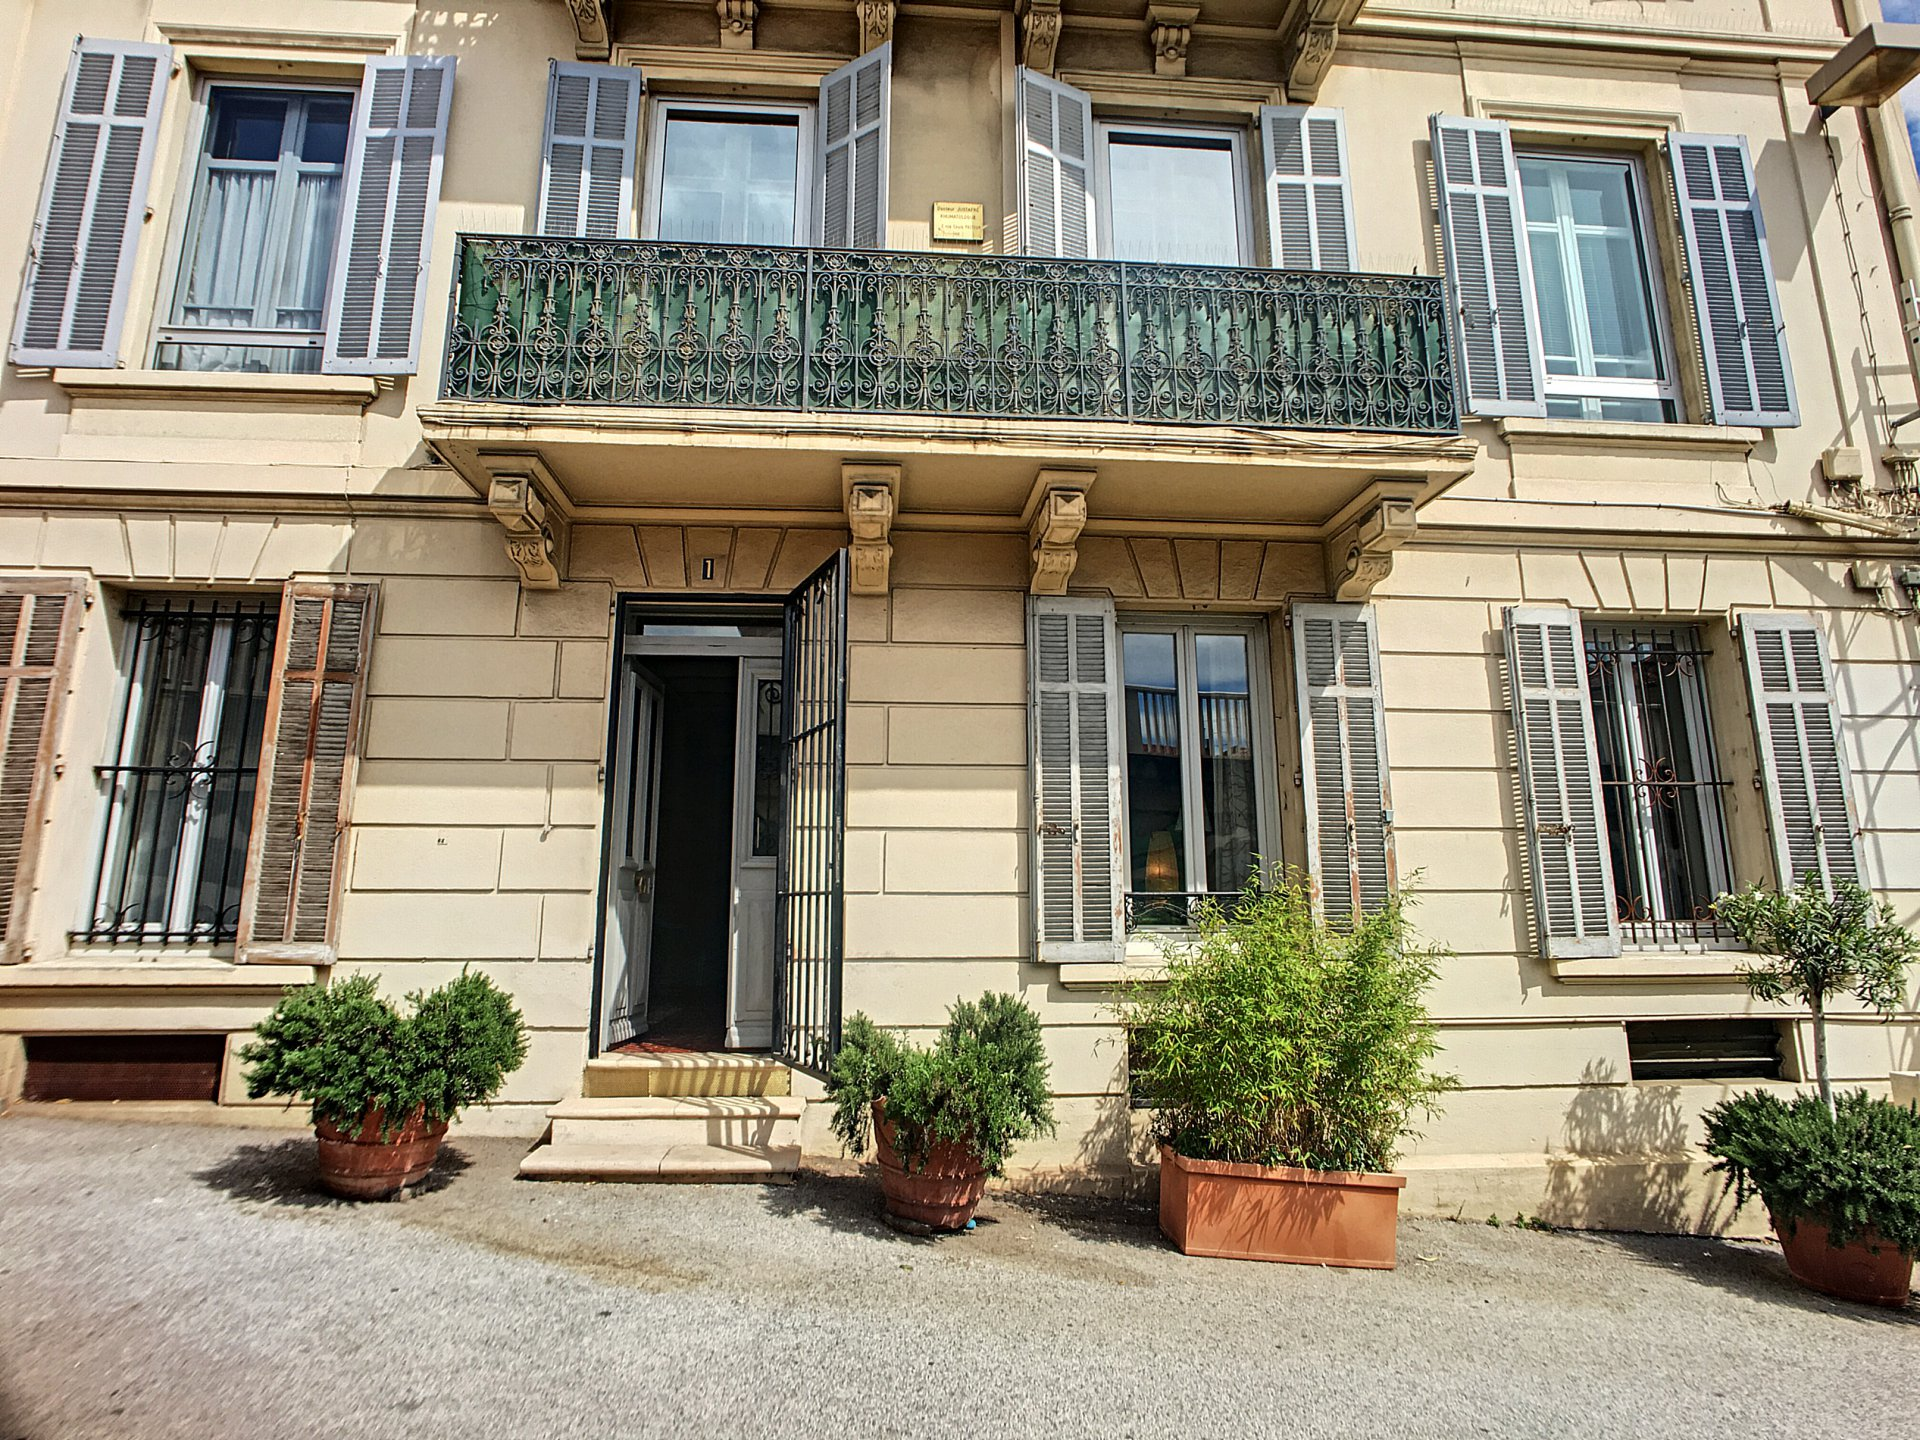 Cannes, 4 rooms of 82 sqm in bourgeois building with cellar